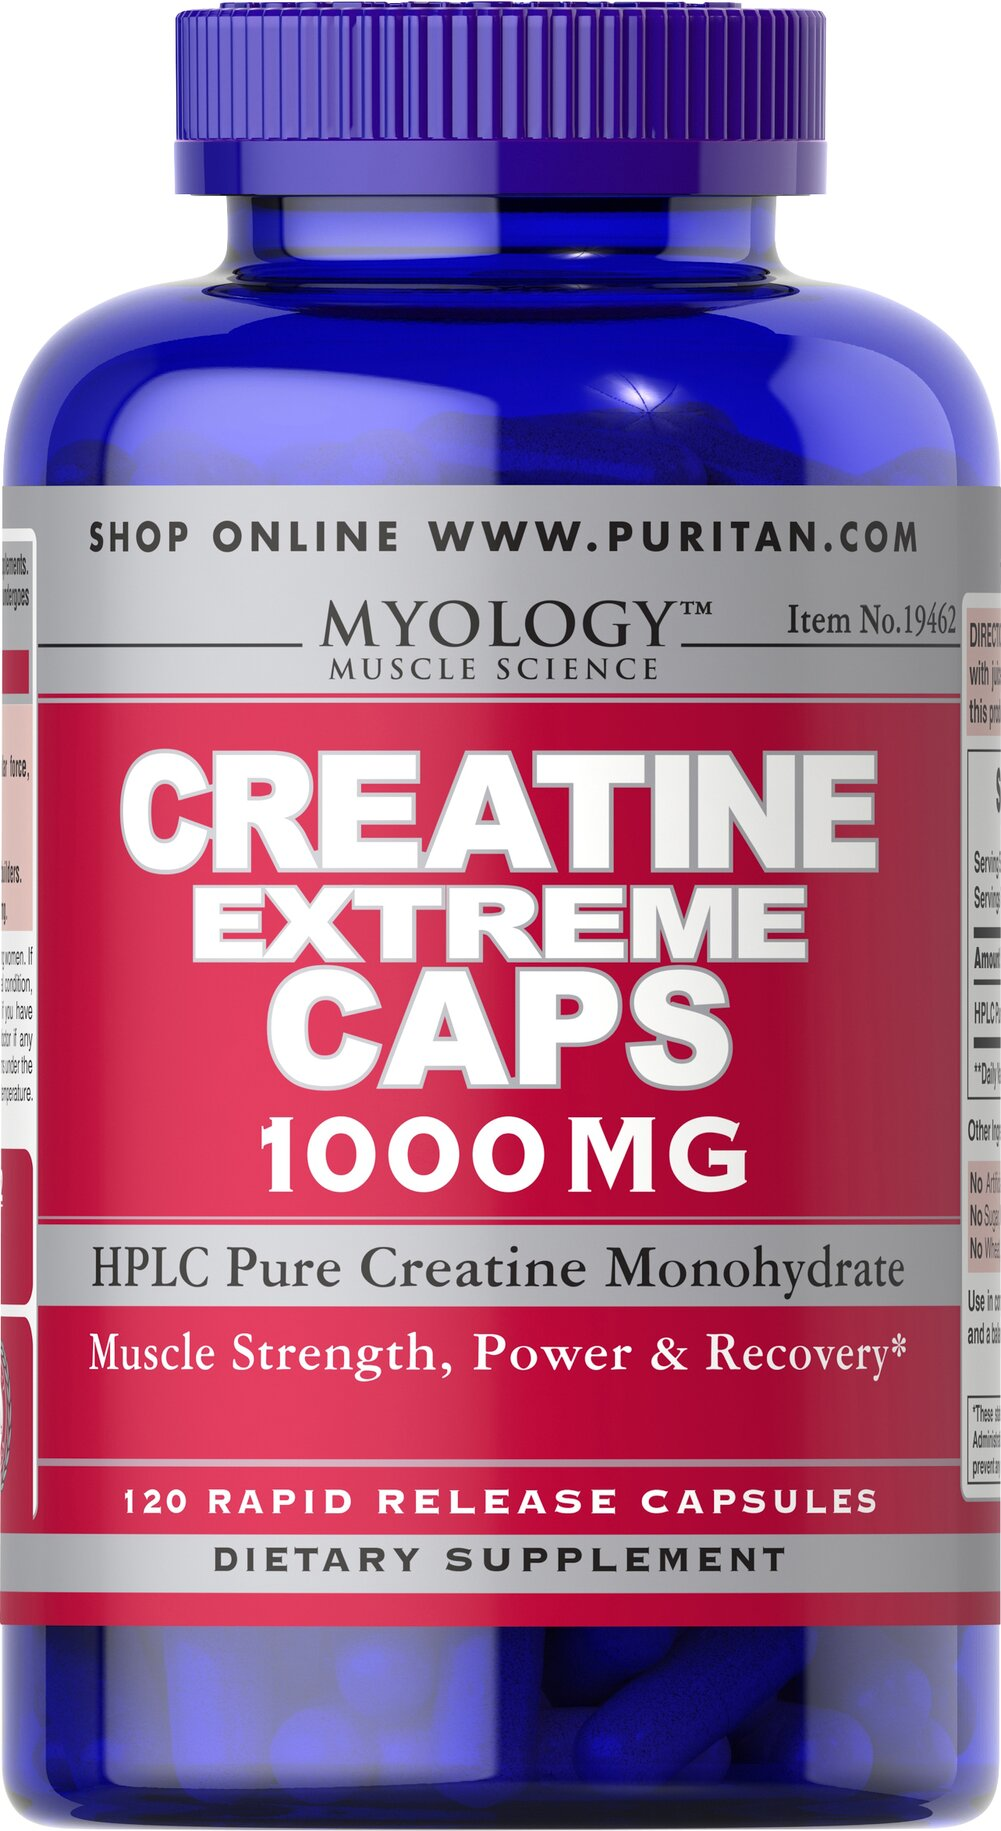 Creatine Extreme 1000 mg Thumbnail Alternate Bottle View